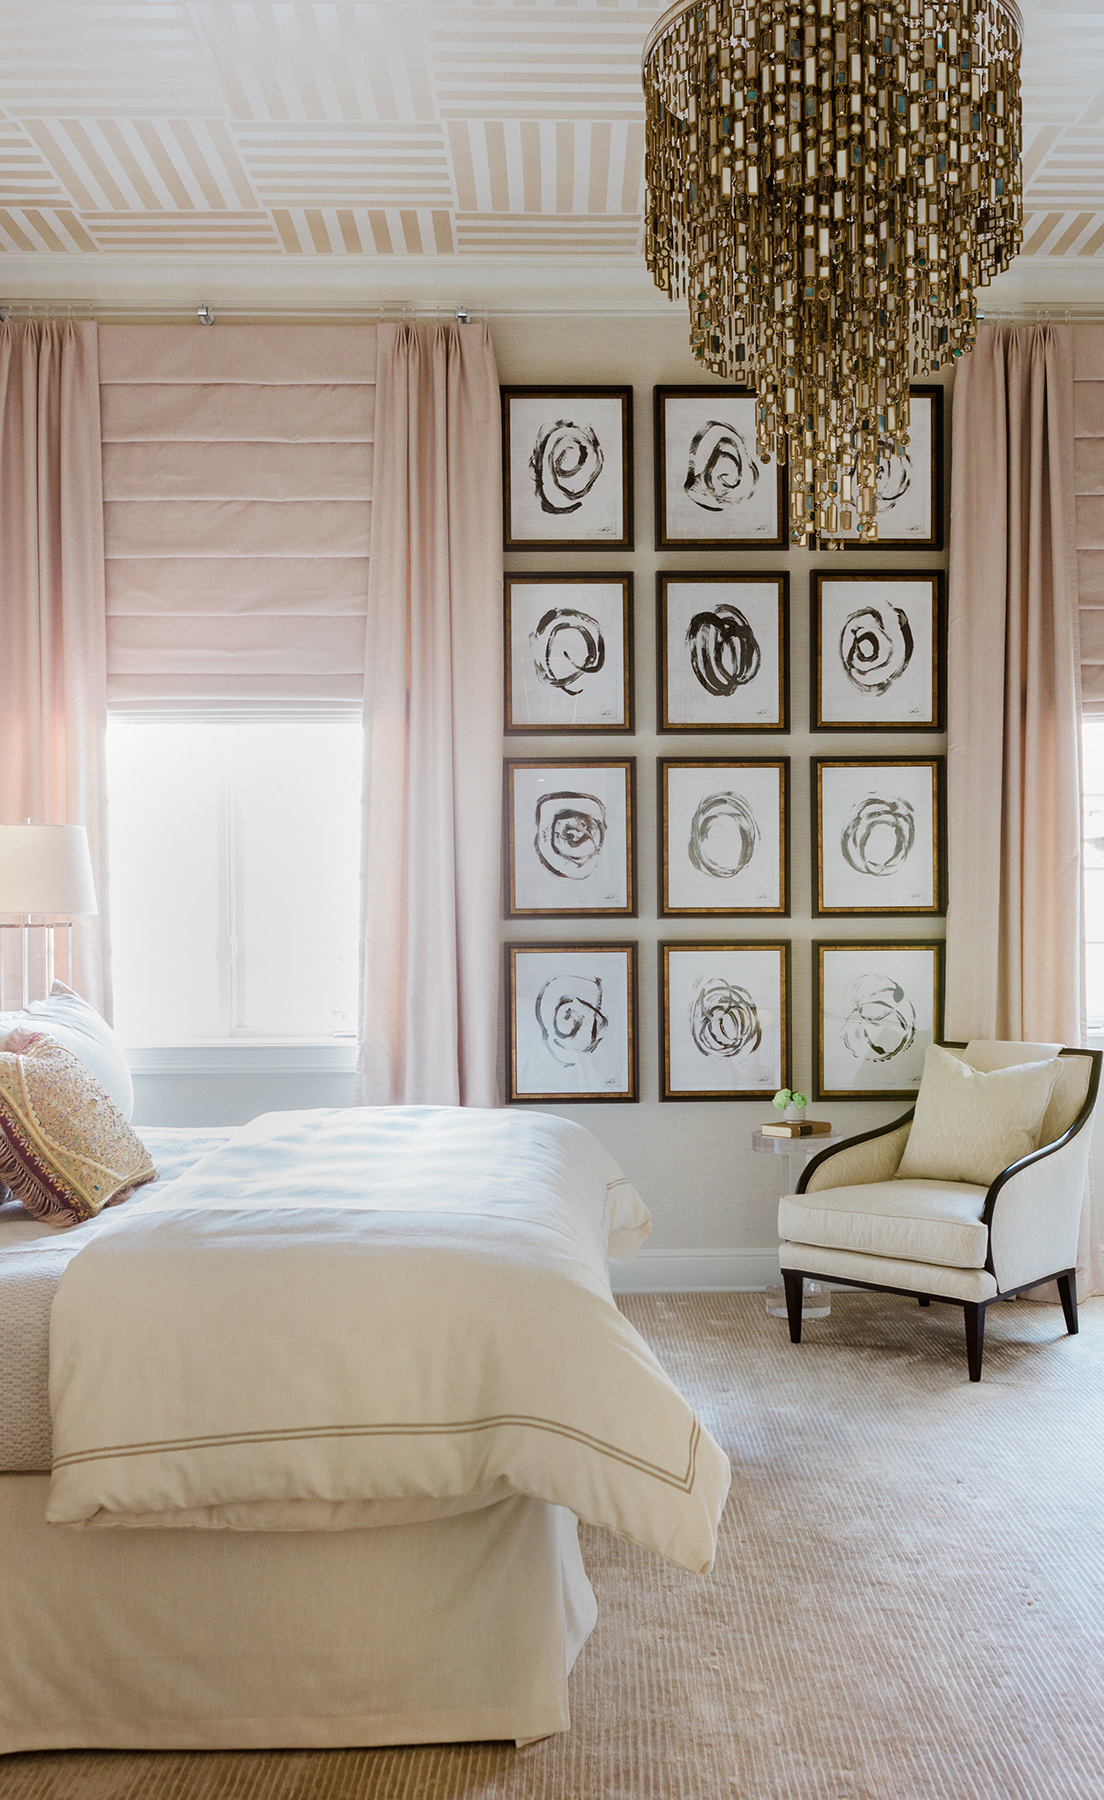 Anthony Michaels Design   Bedroom with Gallery Wall